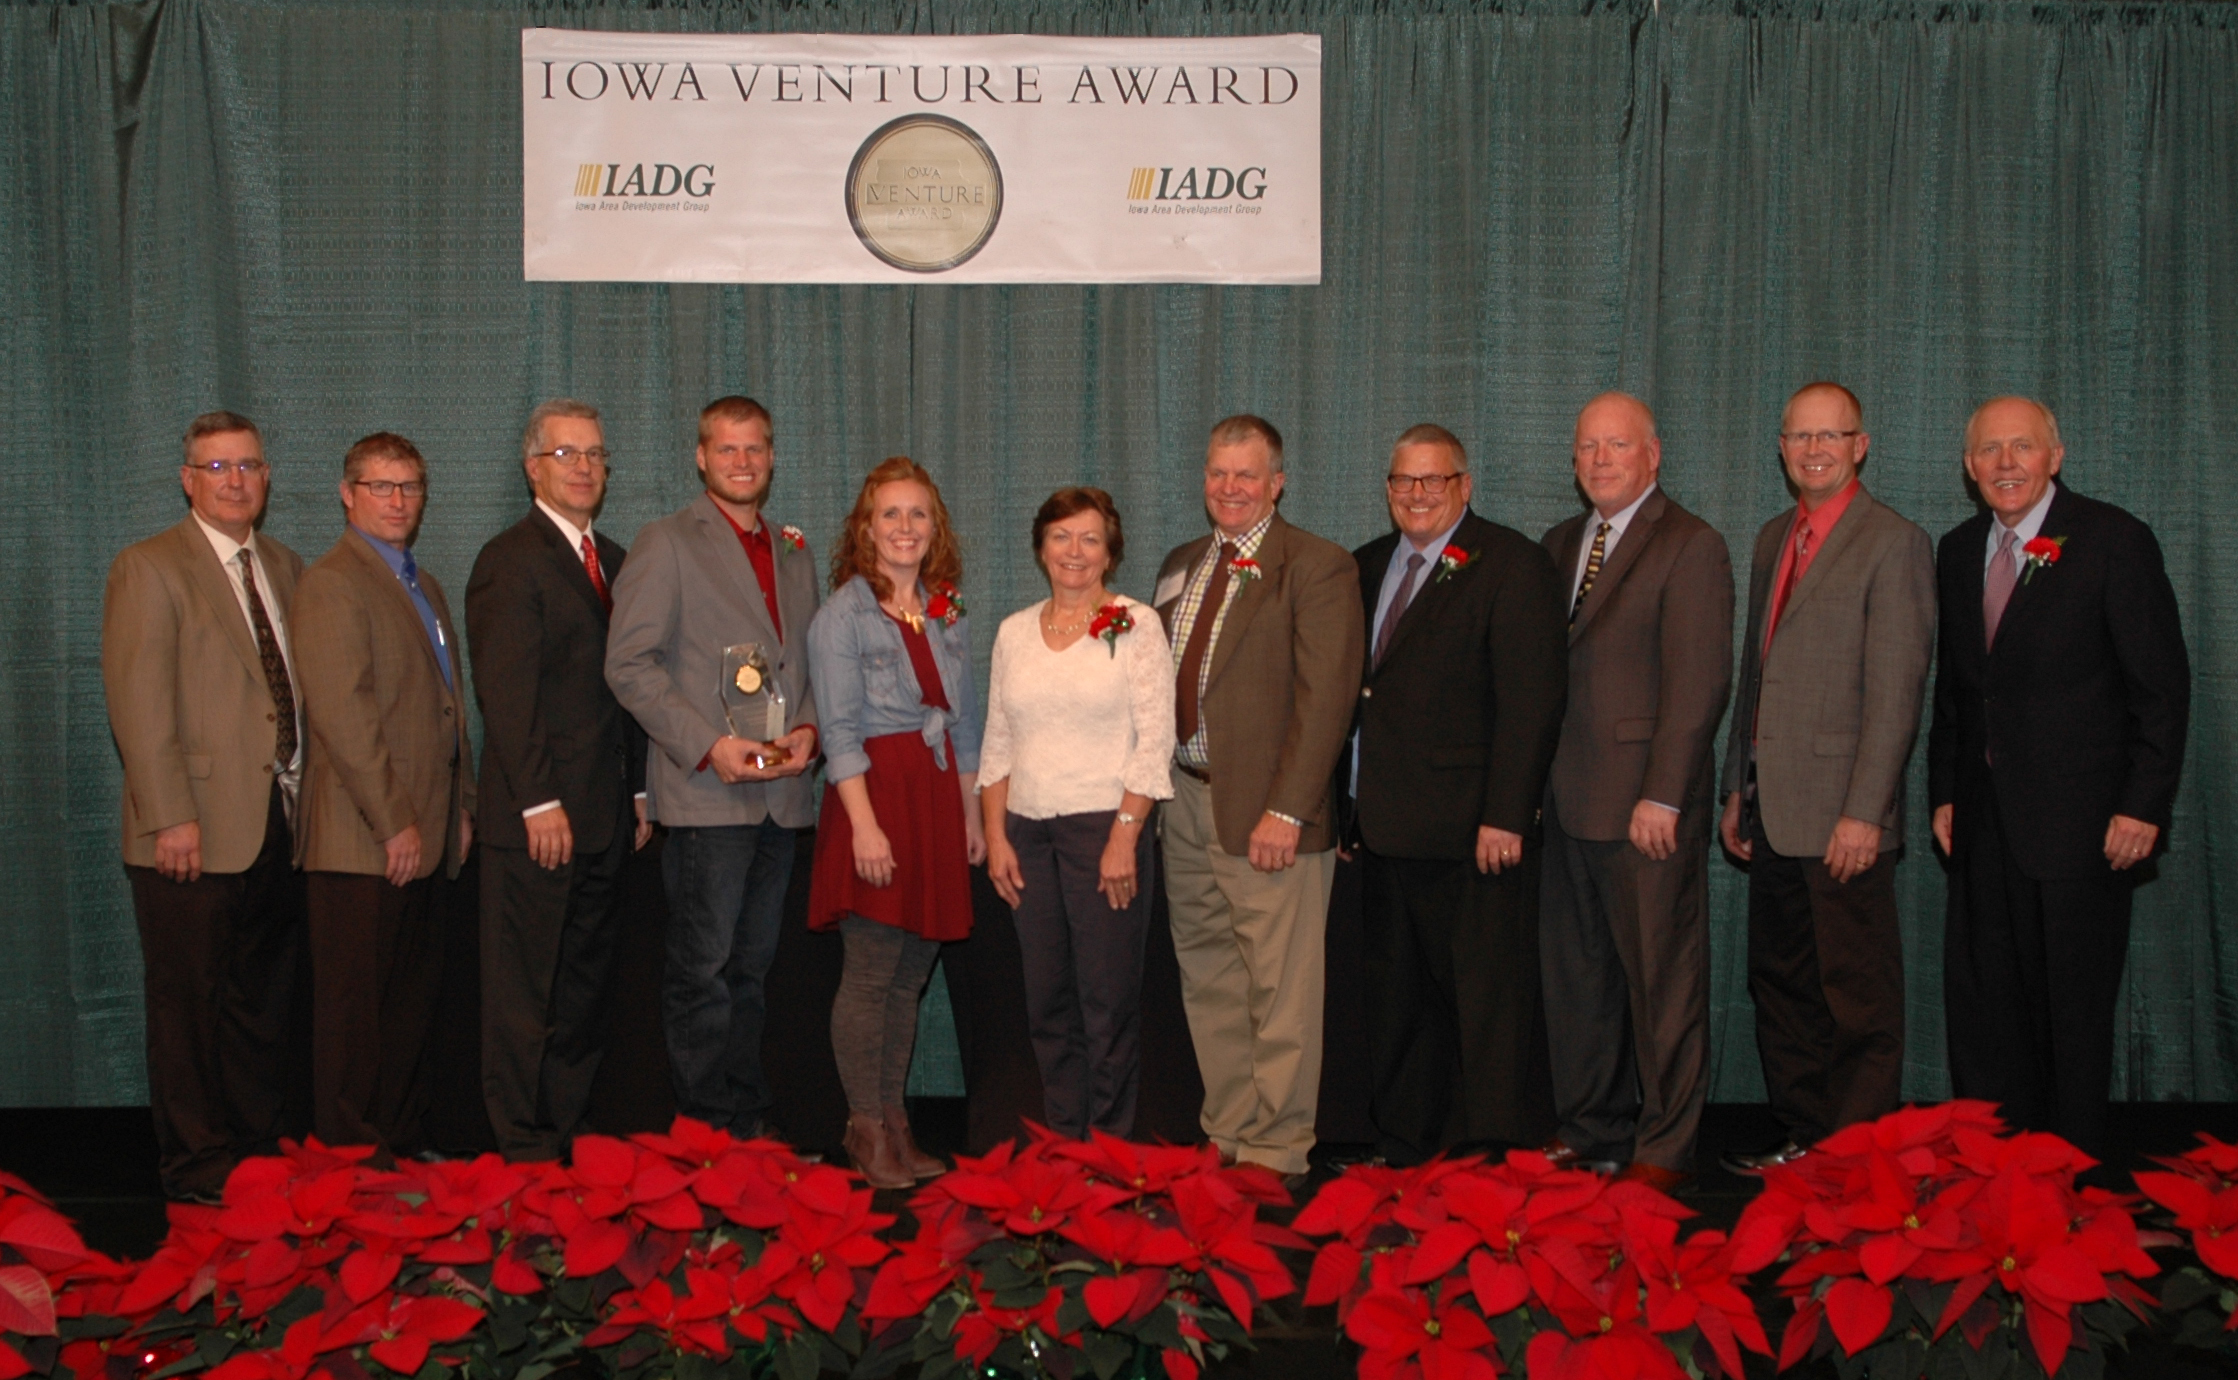 Photo above showcases employees from Maassen Dairy Farms, staff of North West REC, and representatives from Iowa Area Development Group (IADG).